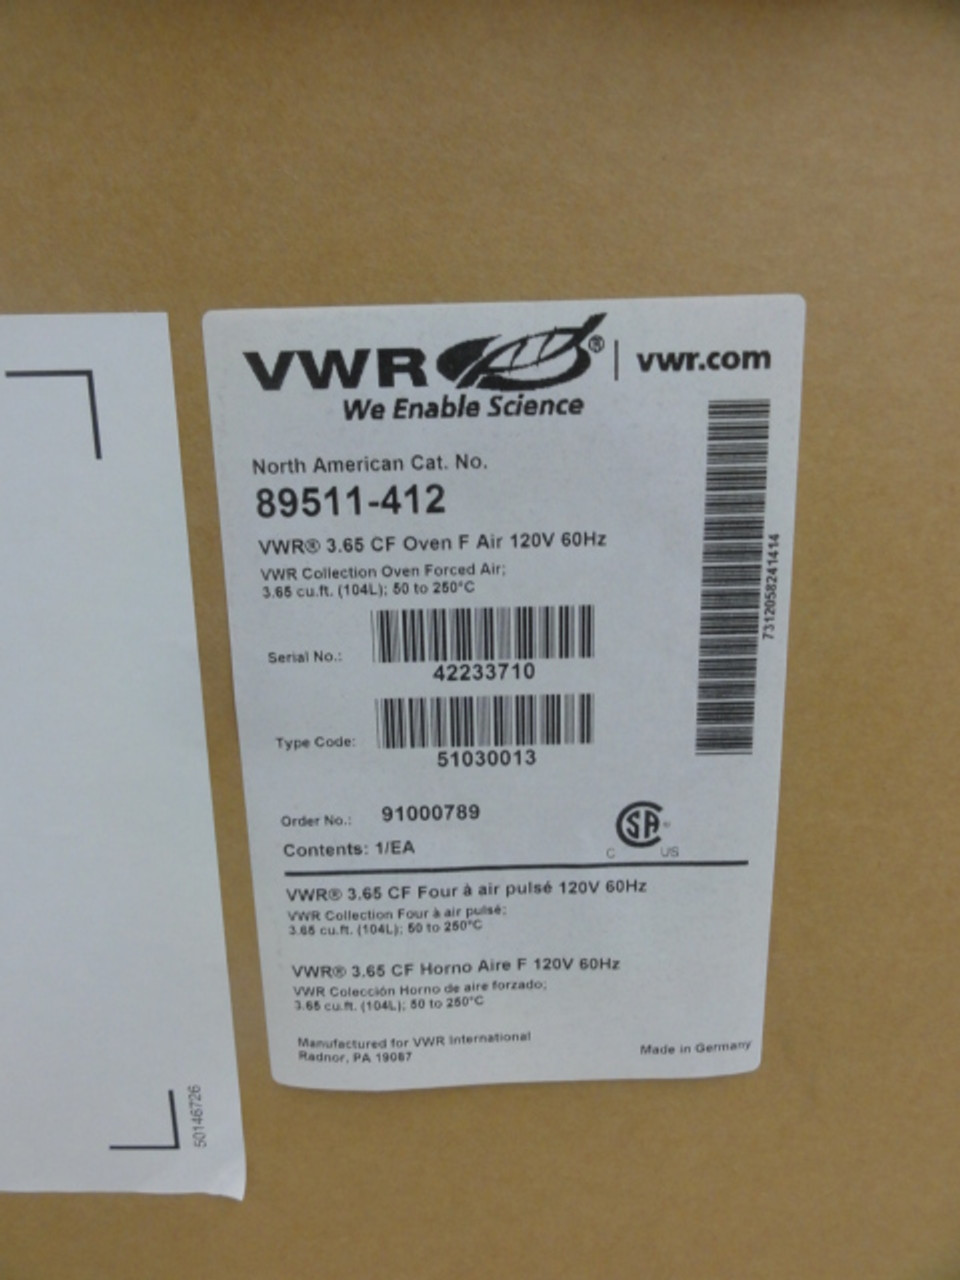 VWR Cat No. 89511-412 Collection Oven Forced Air, 3.65CF (104L); 50-250C